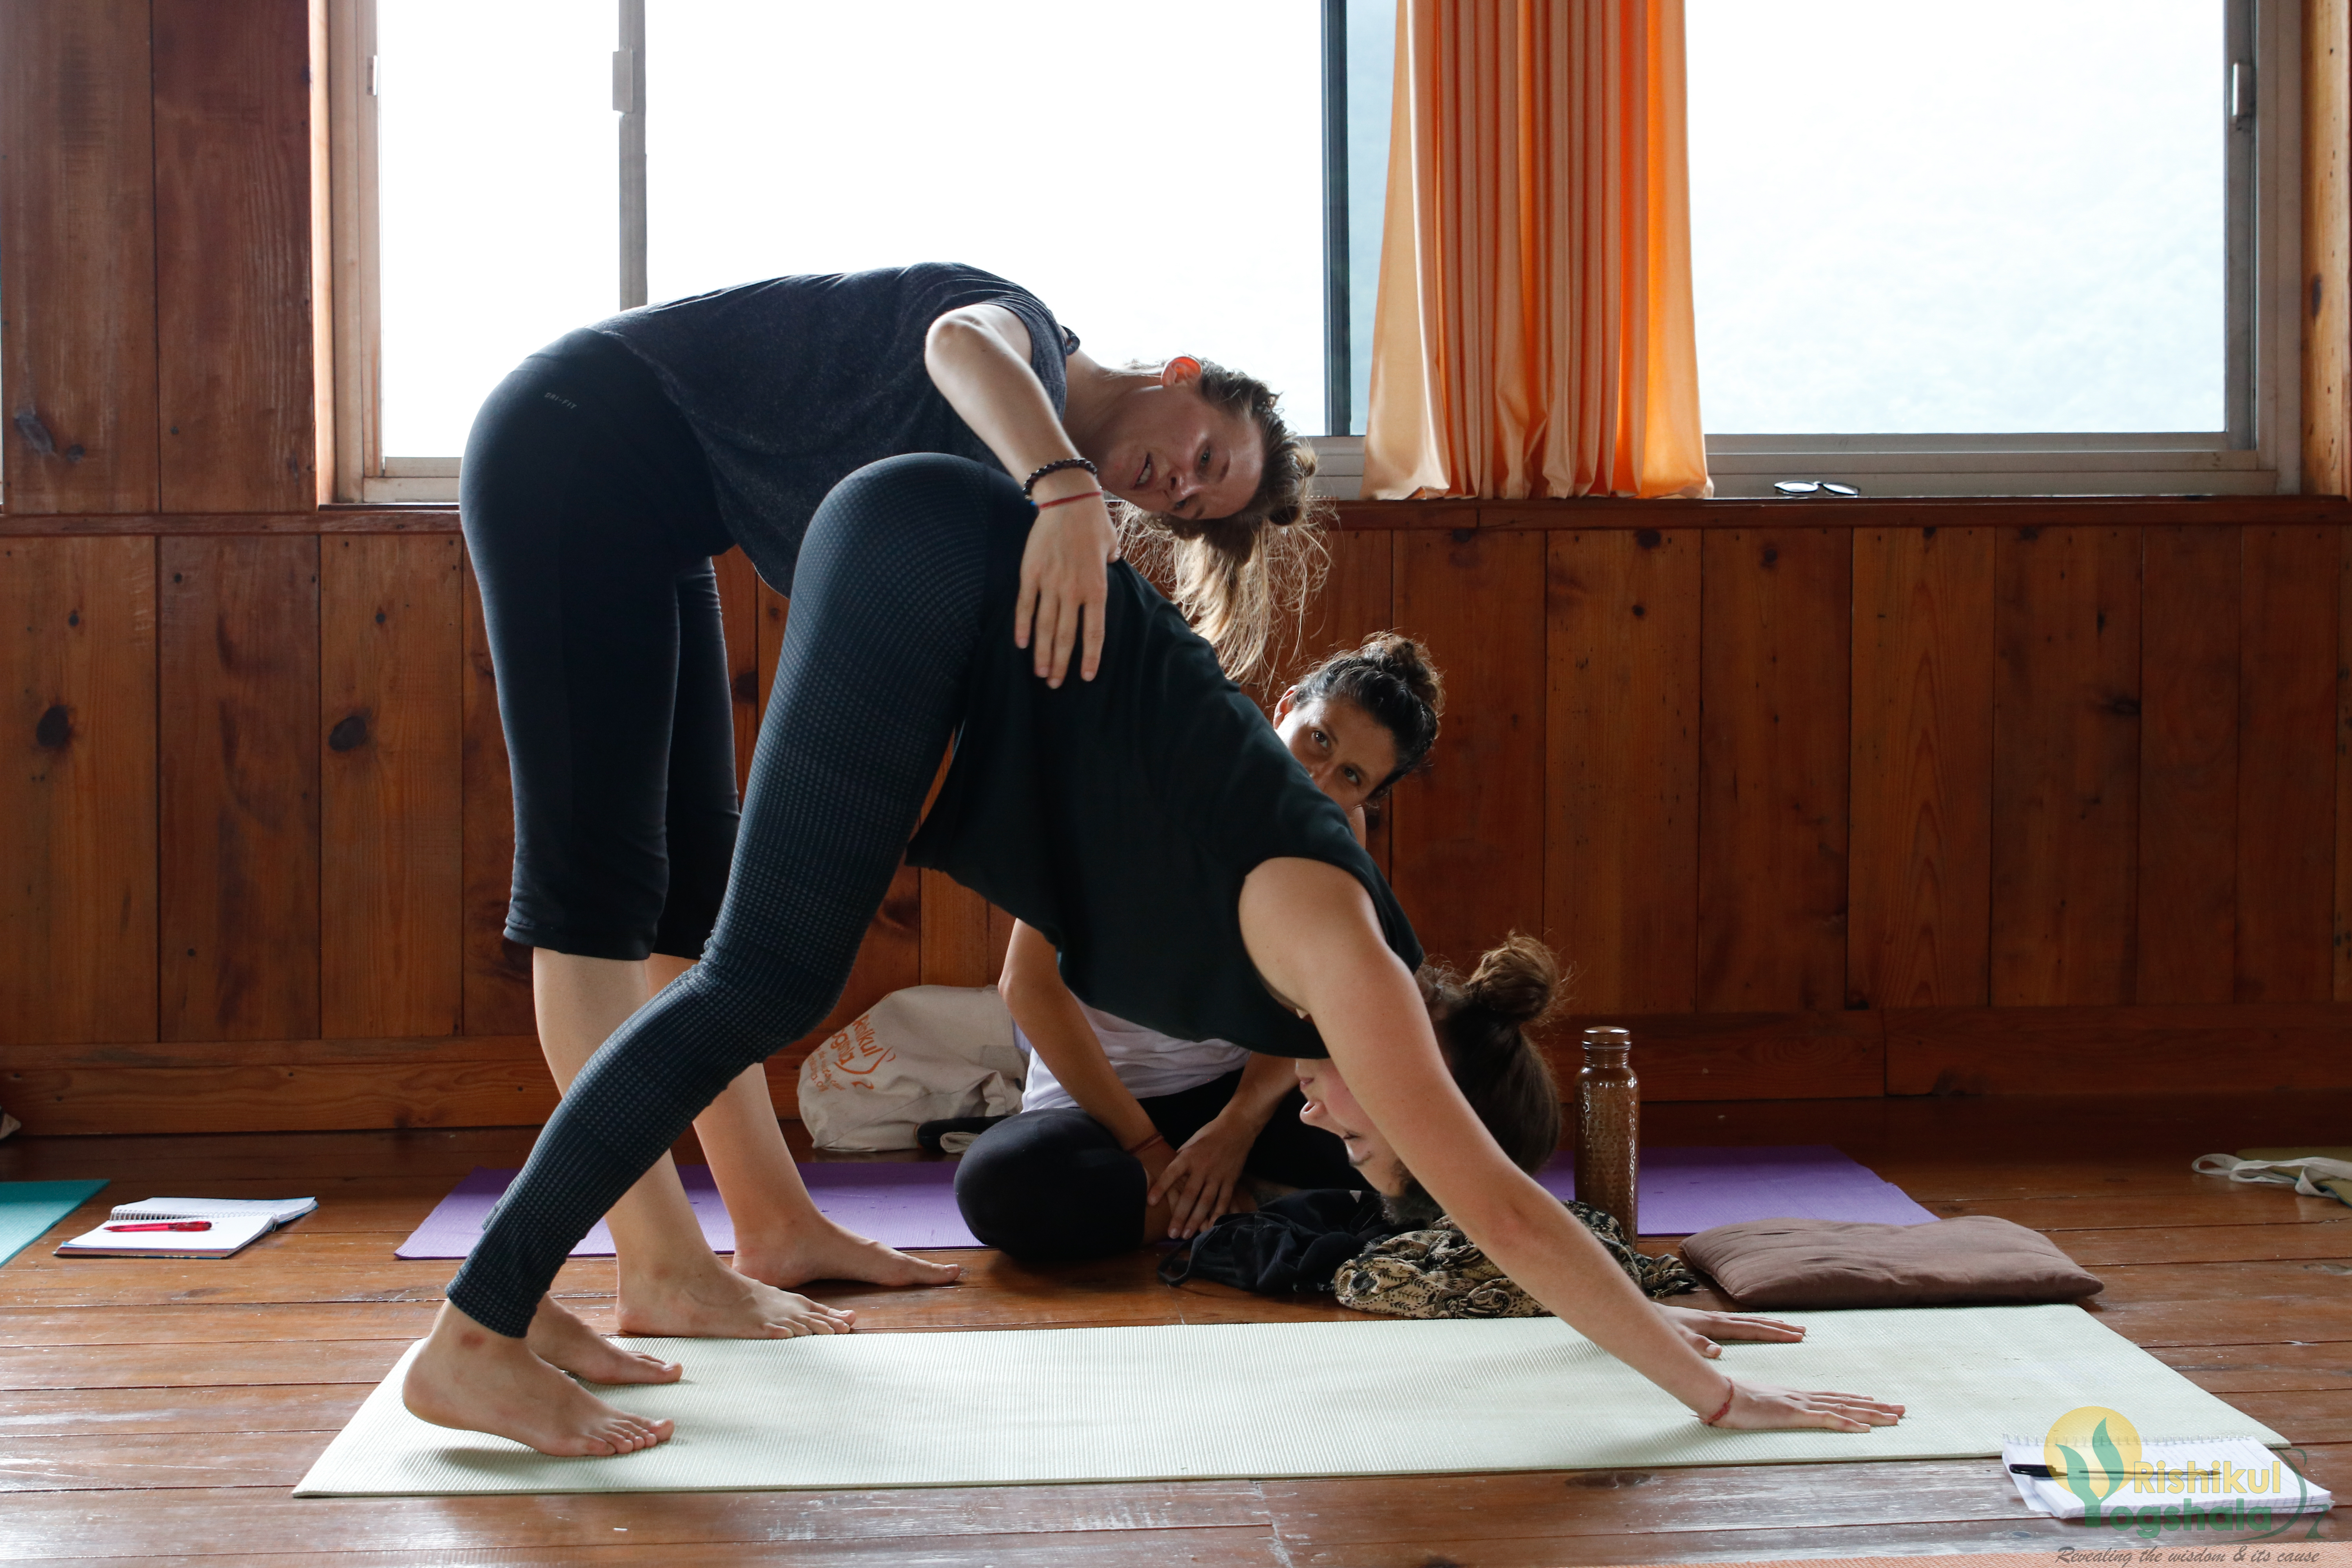 6 Yoga Schools That Offer Online Yoga Classes To Learn From Home